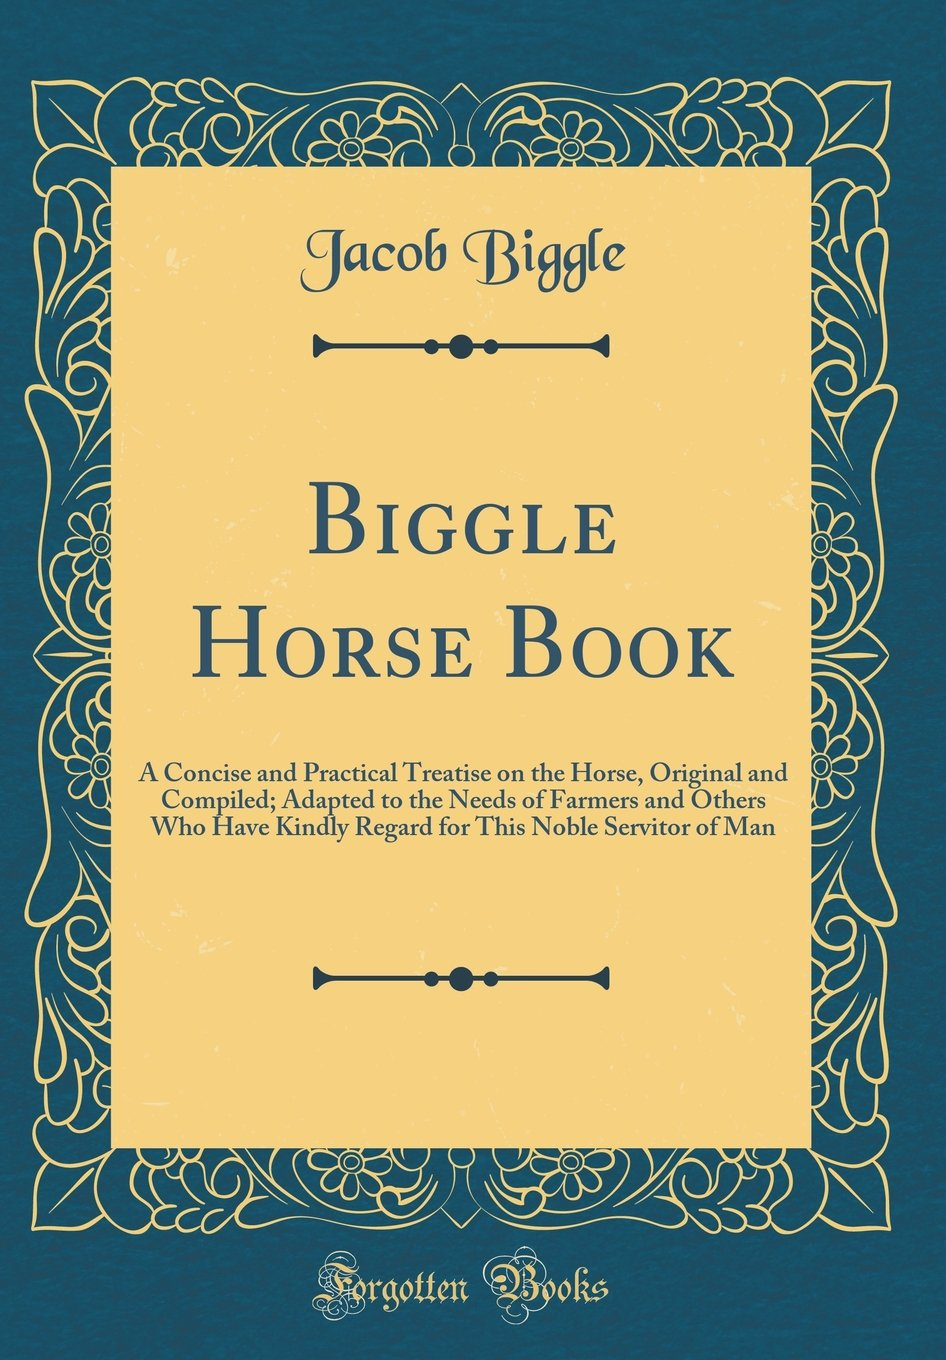 Biggle Horse Book: A Concise and Practical Treatise on the Horse, Original and Compiled; Adapted to the Needs of Farmers and Others Who Have Kindly This Noble Servitor of Man (Classic Reprint) pdf